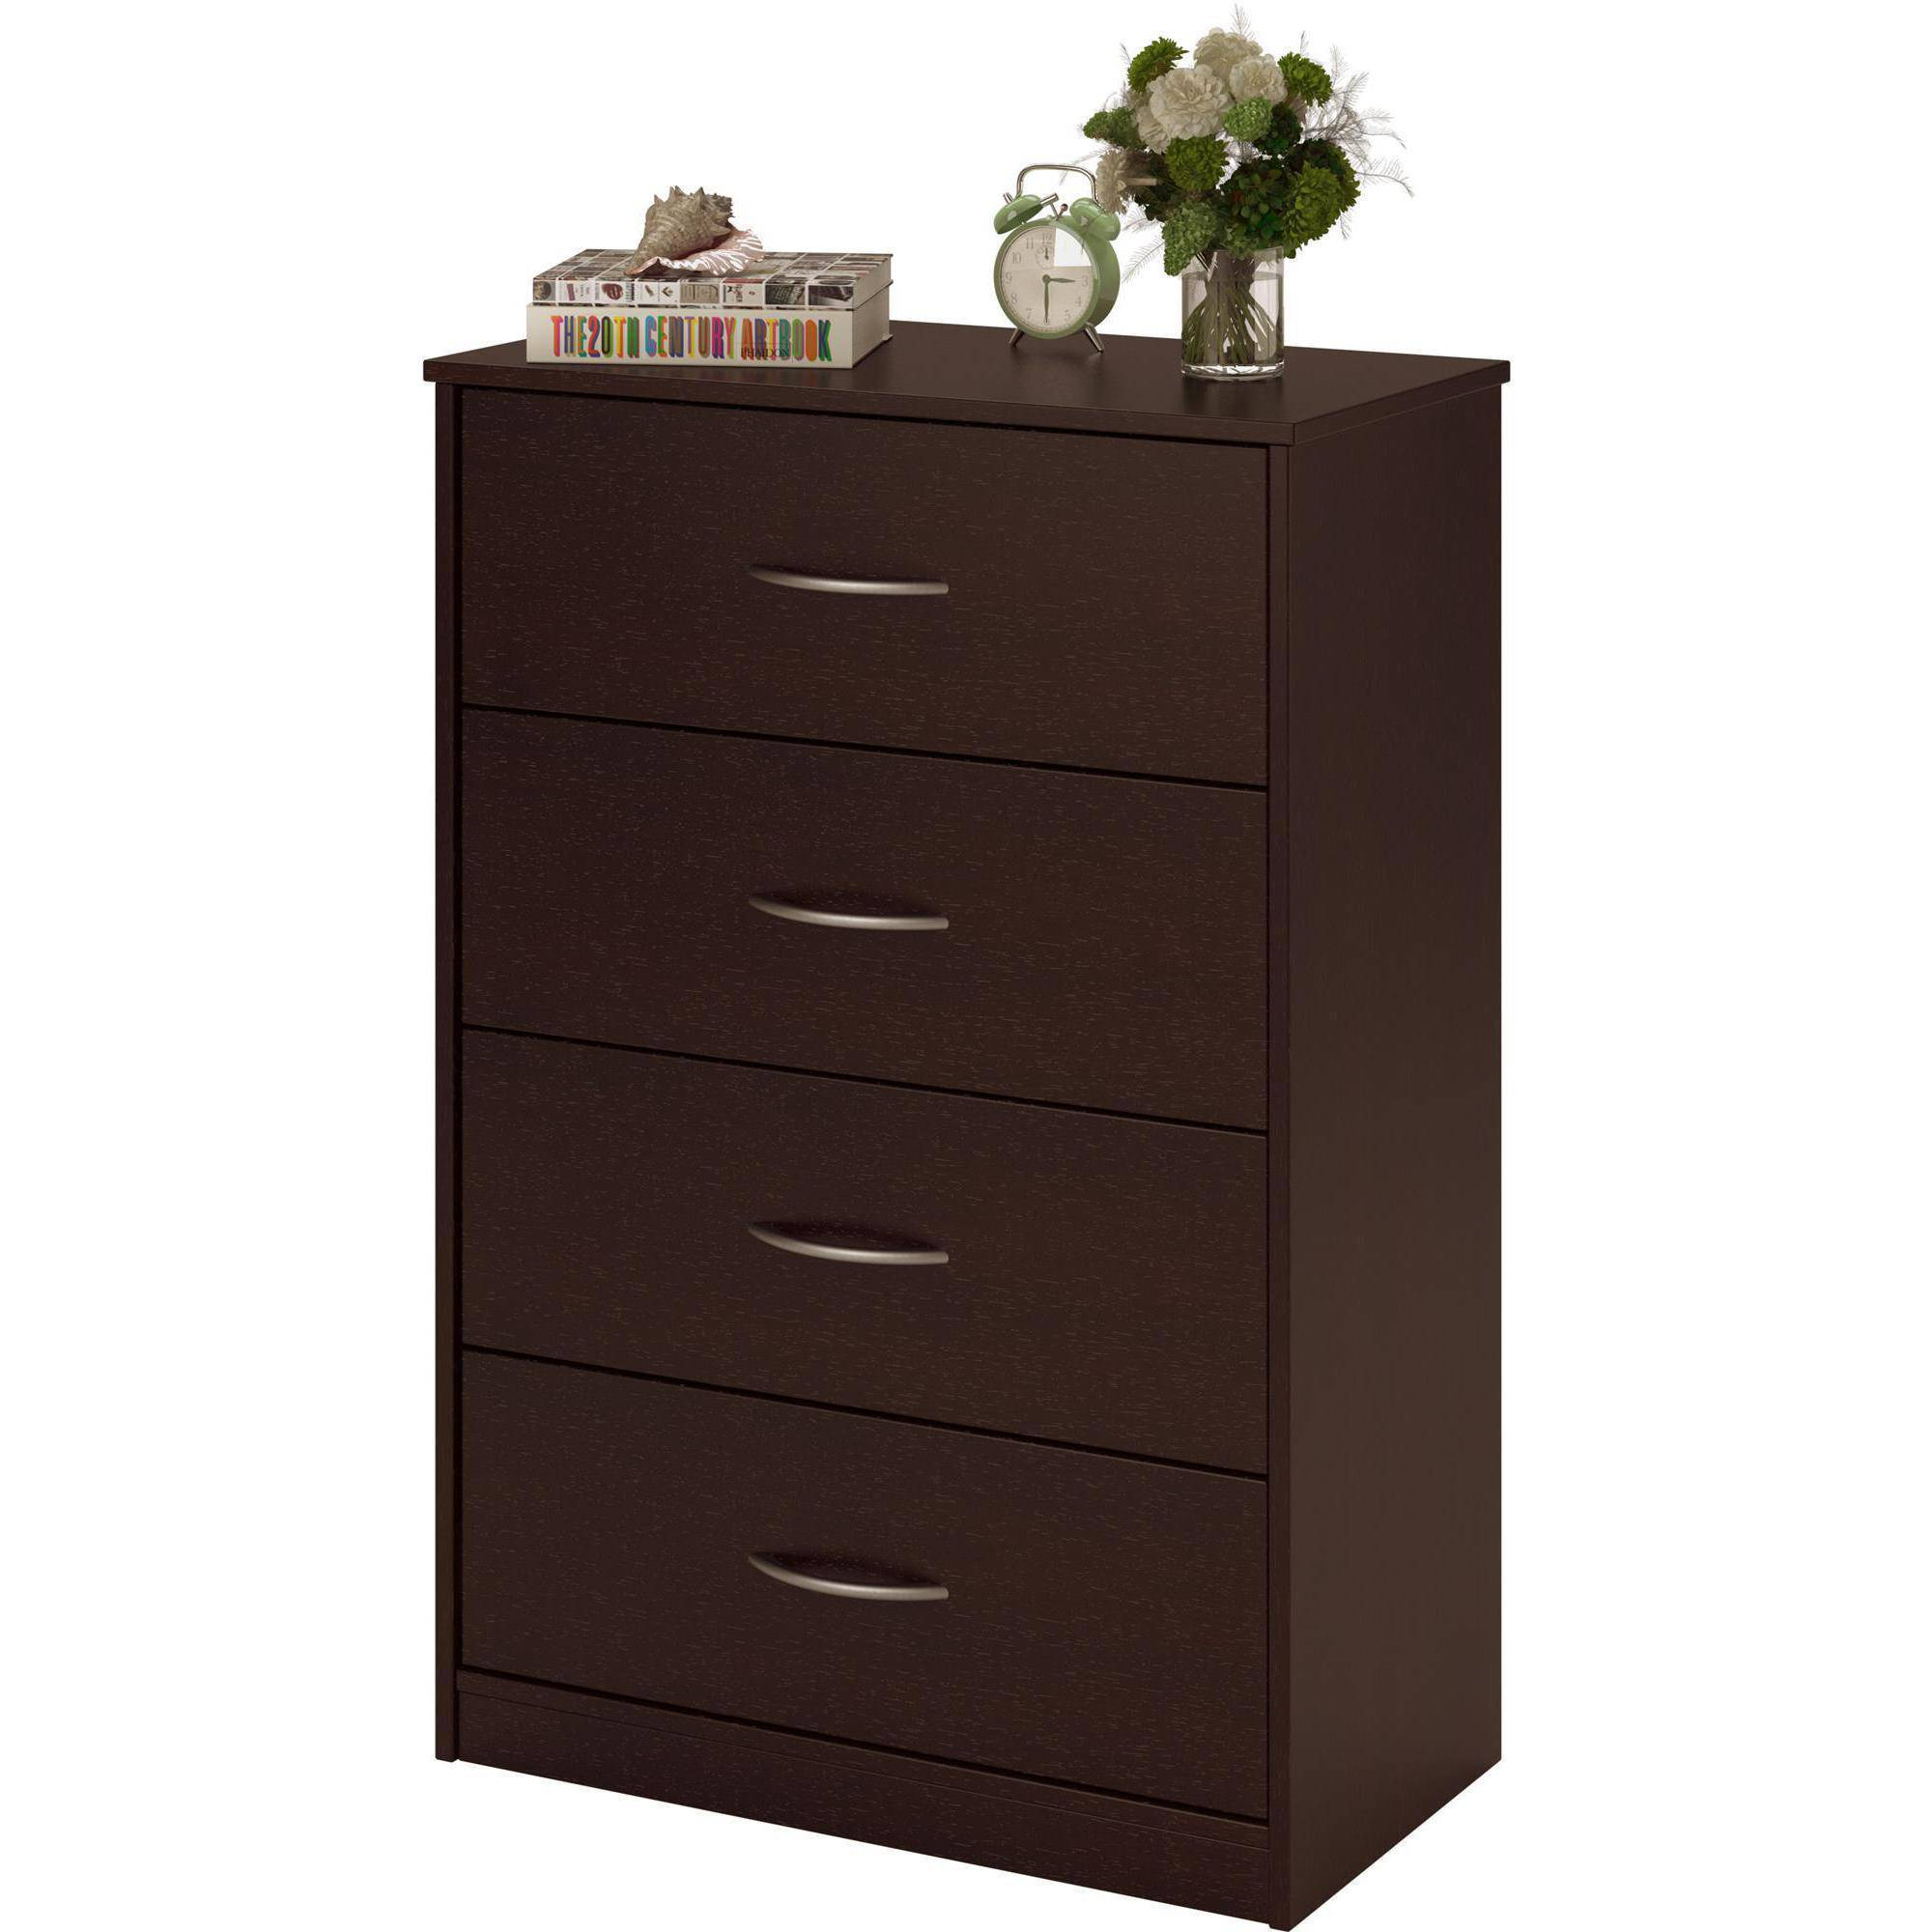 Brown pine 4 drawer dresser